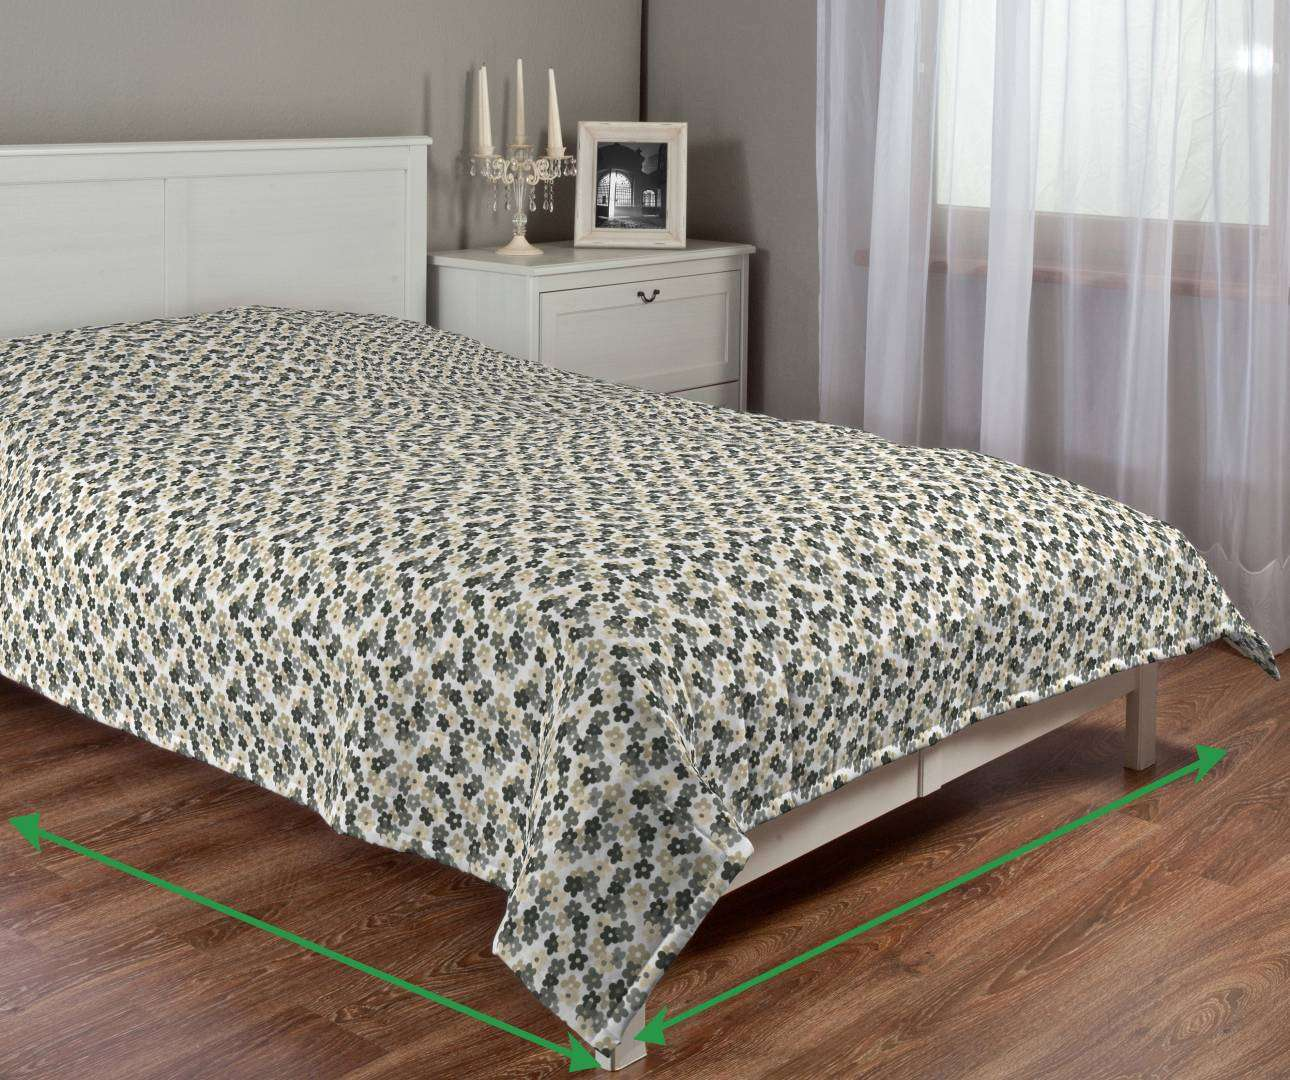 Quilted throw (vertical quilt pattern) in collection Fleur , fabric: 137-57